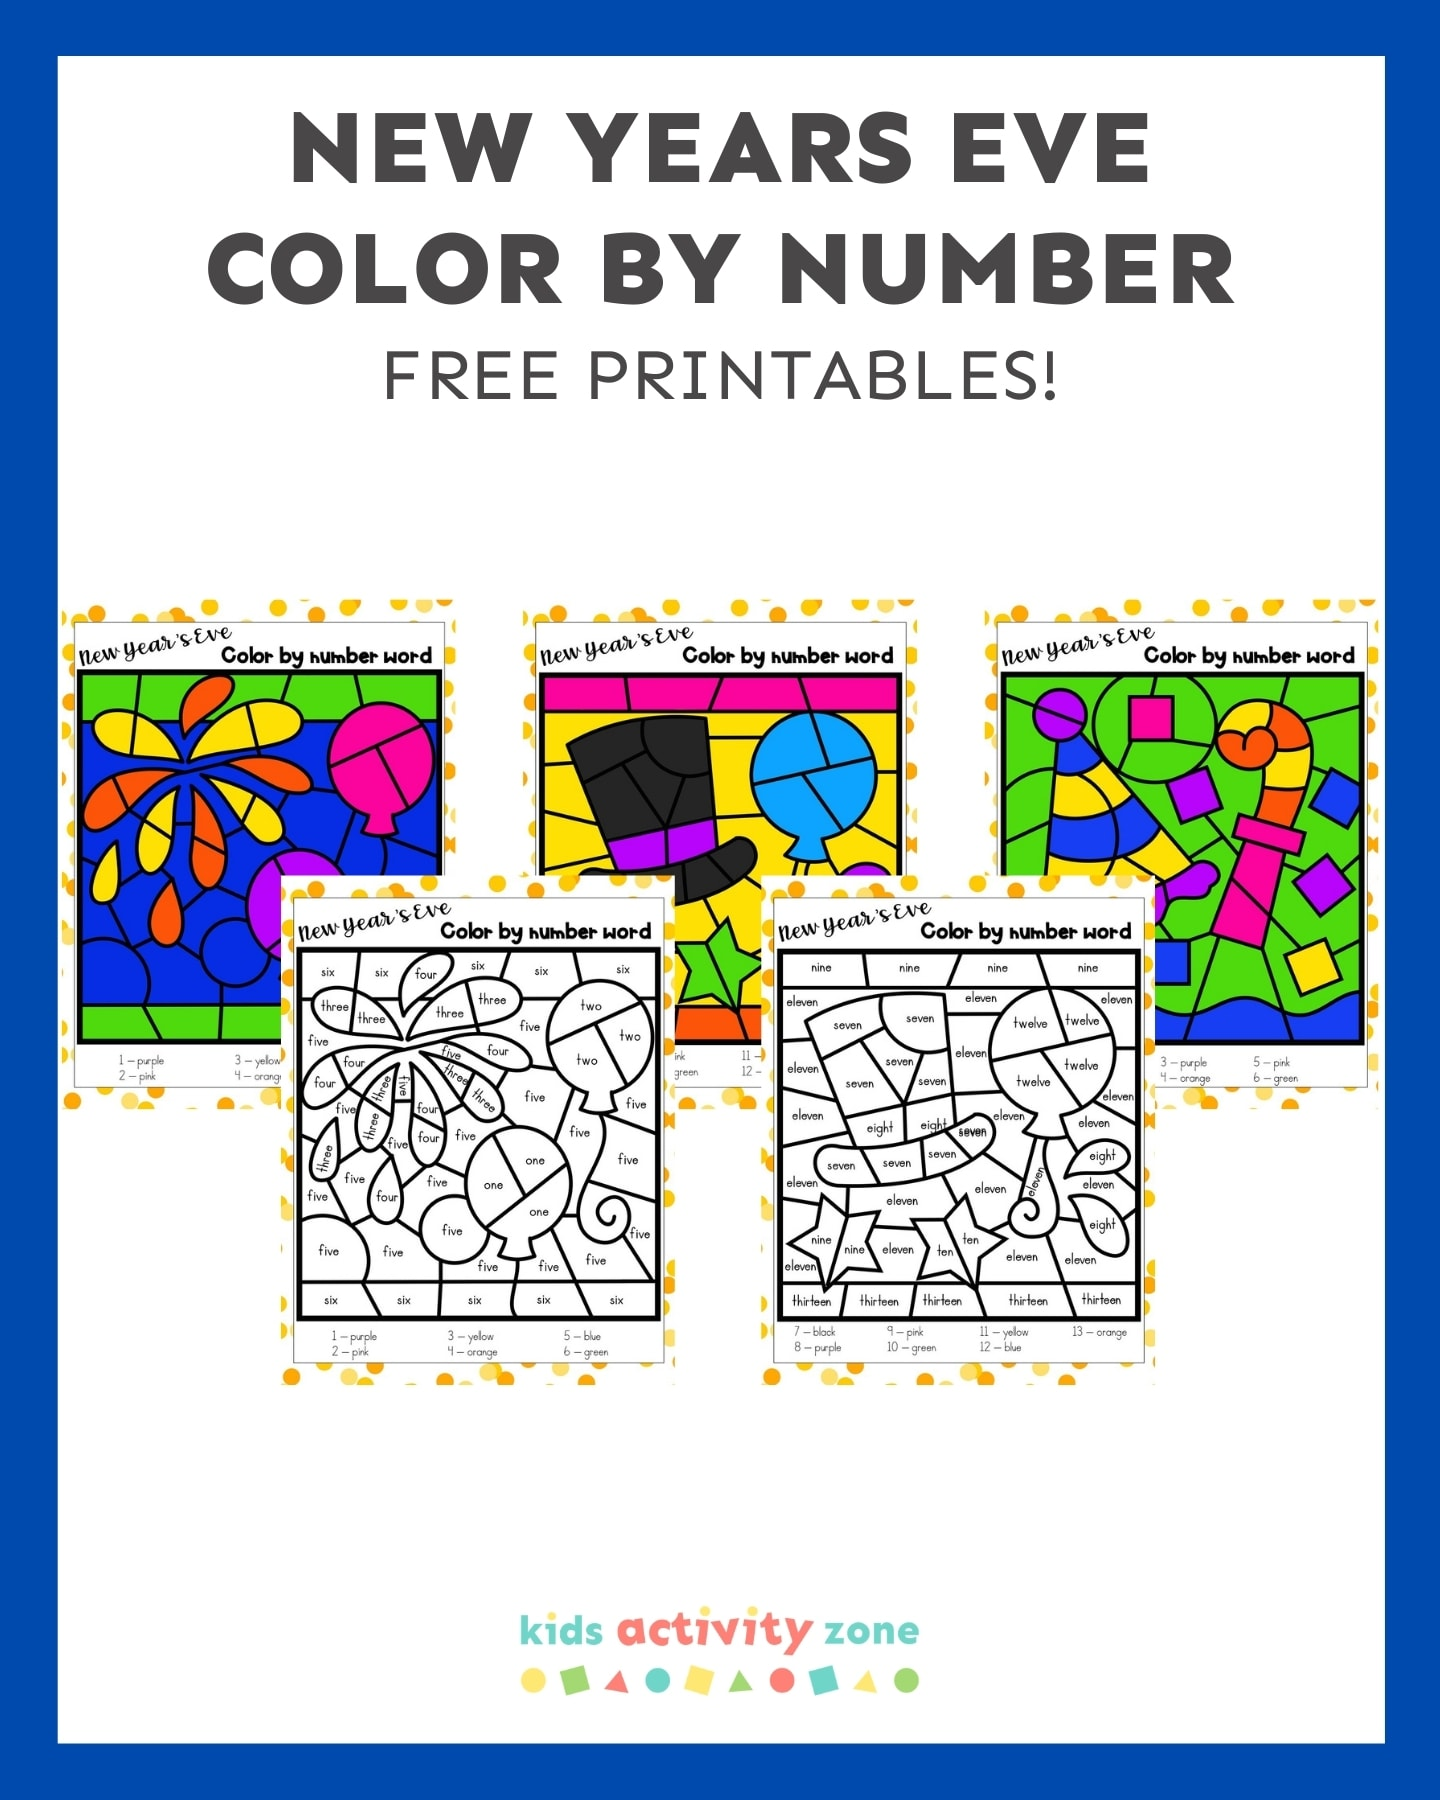 New Years Eve Color By Number - Featured Image Template showing printables in a collage